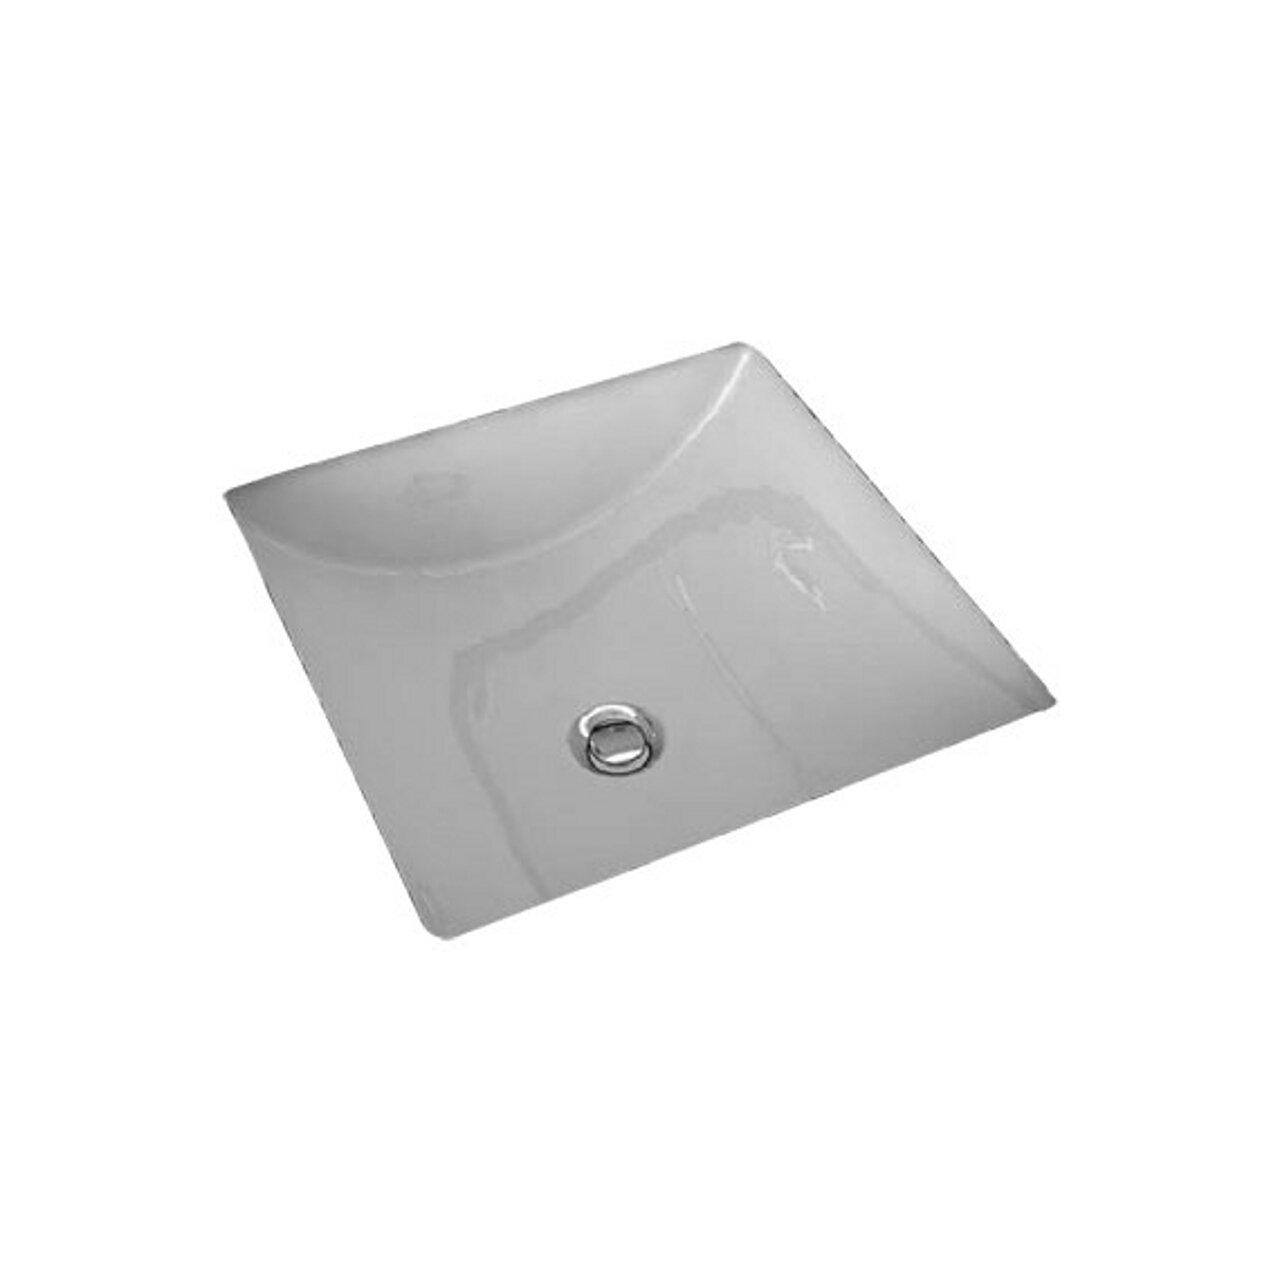 American Standard 0426000.020 Studio Carre 13 by 13-Inch Undercounter Sink, White by American Standard